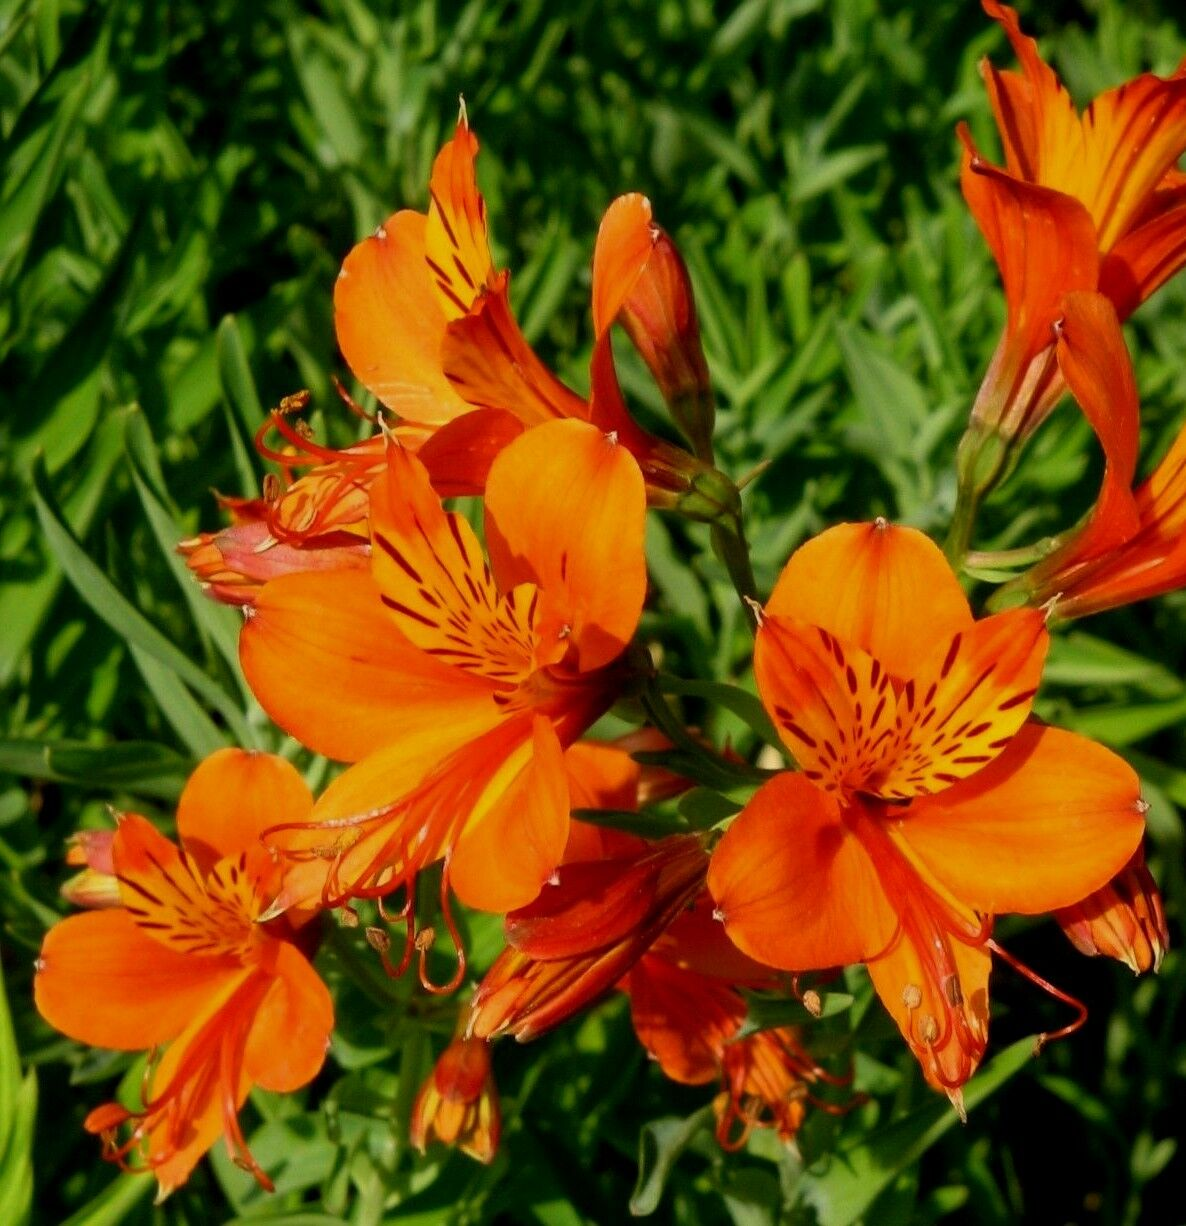 peruvian lily alstroemeria aurantiaca red orange hardy perennial 6 seeds ebay. Black Bedroom Furniture Sets. Home Design Ideas